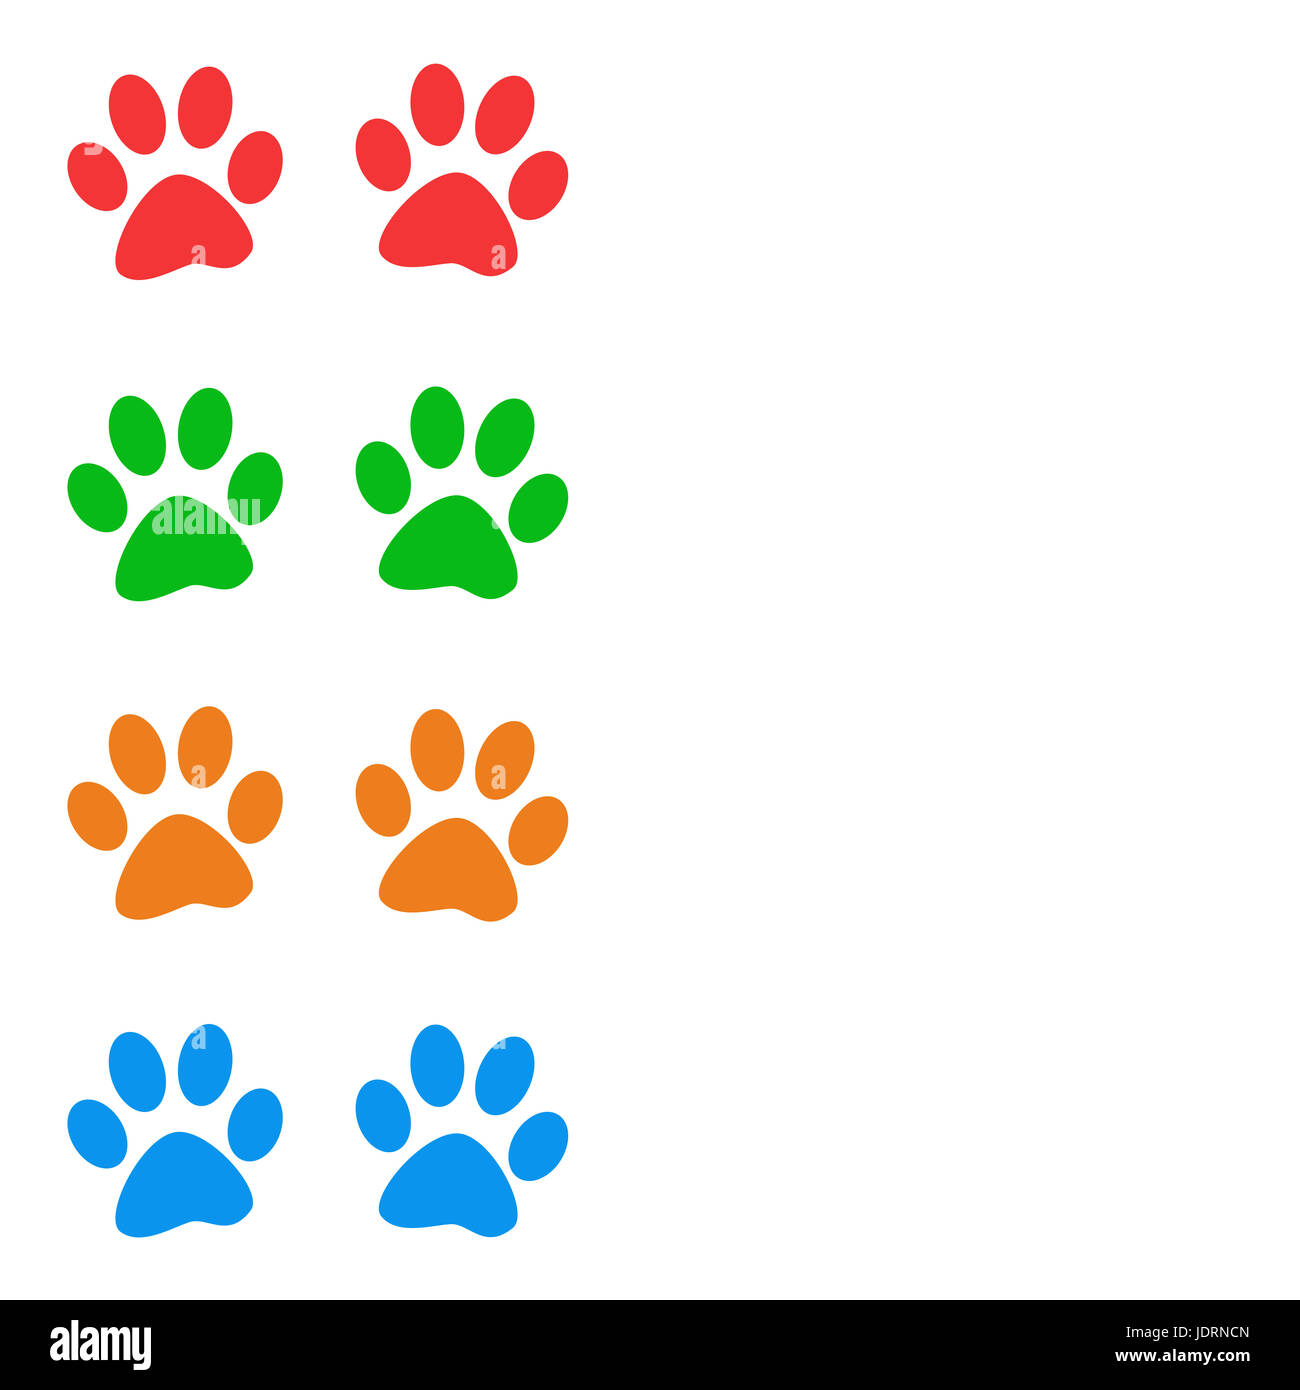 Colorful animal paw prints on white background with copy space. Raster graphic image Stock Photo